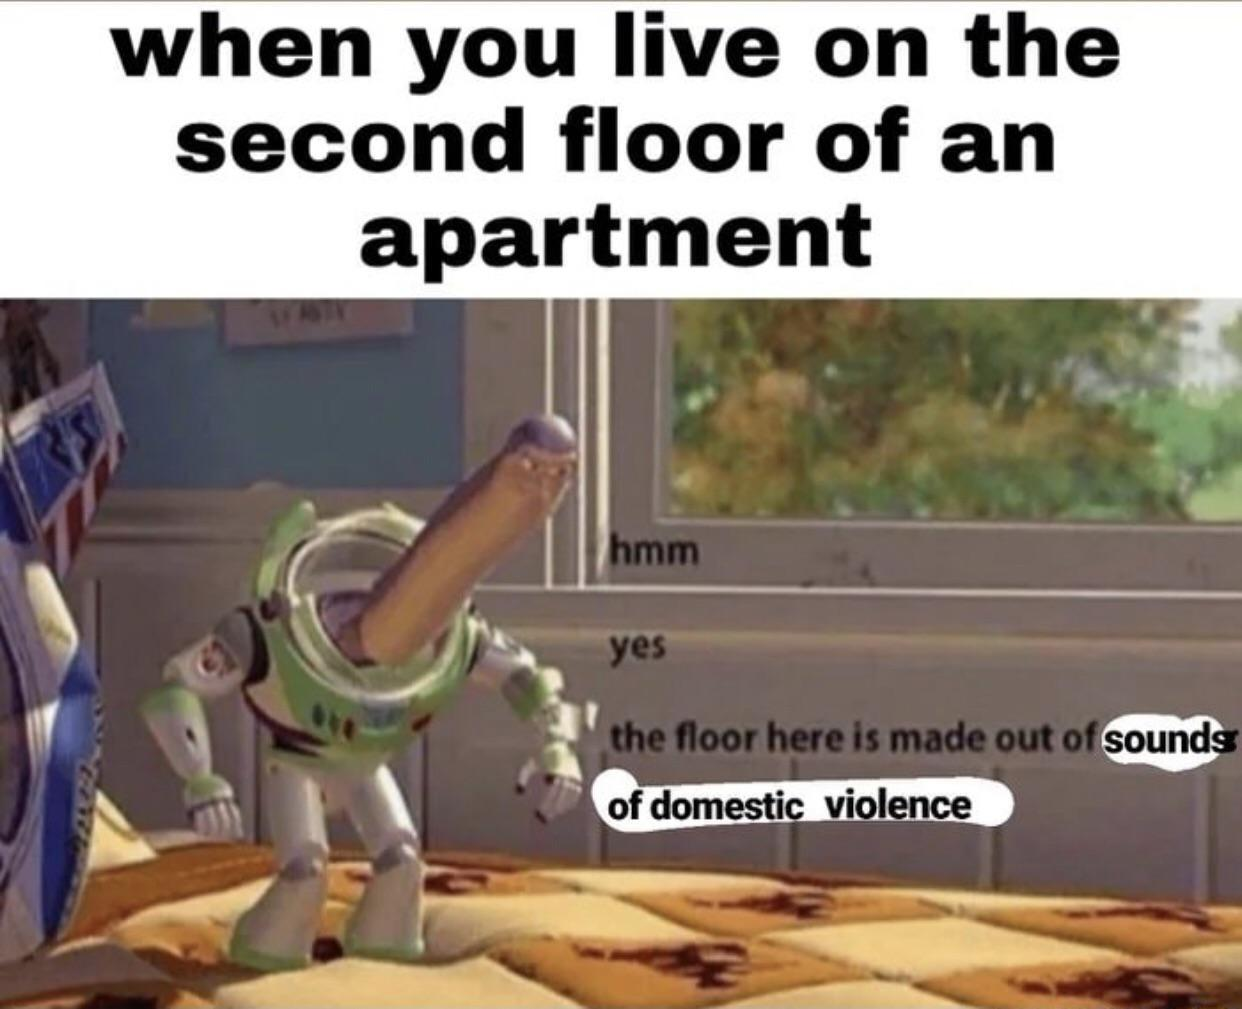 I used to live in an apartment and here screaming all the time - meme